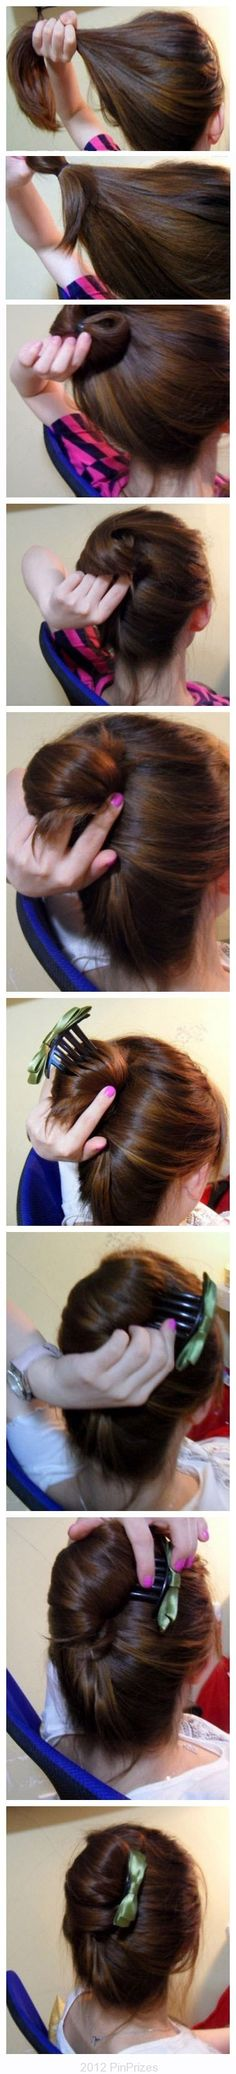 Tutorials For Your Hairstyle